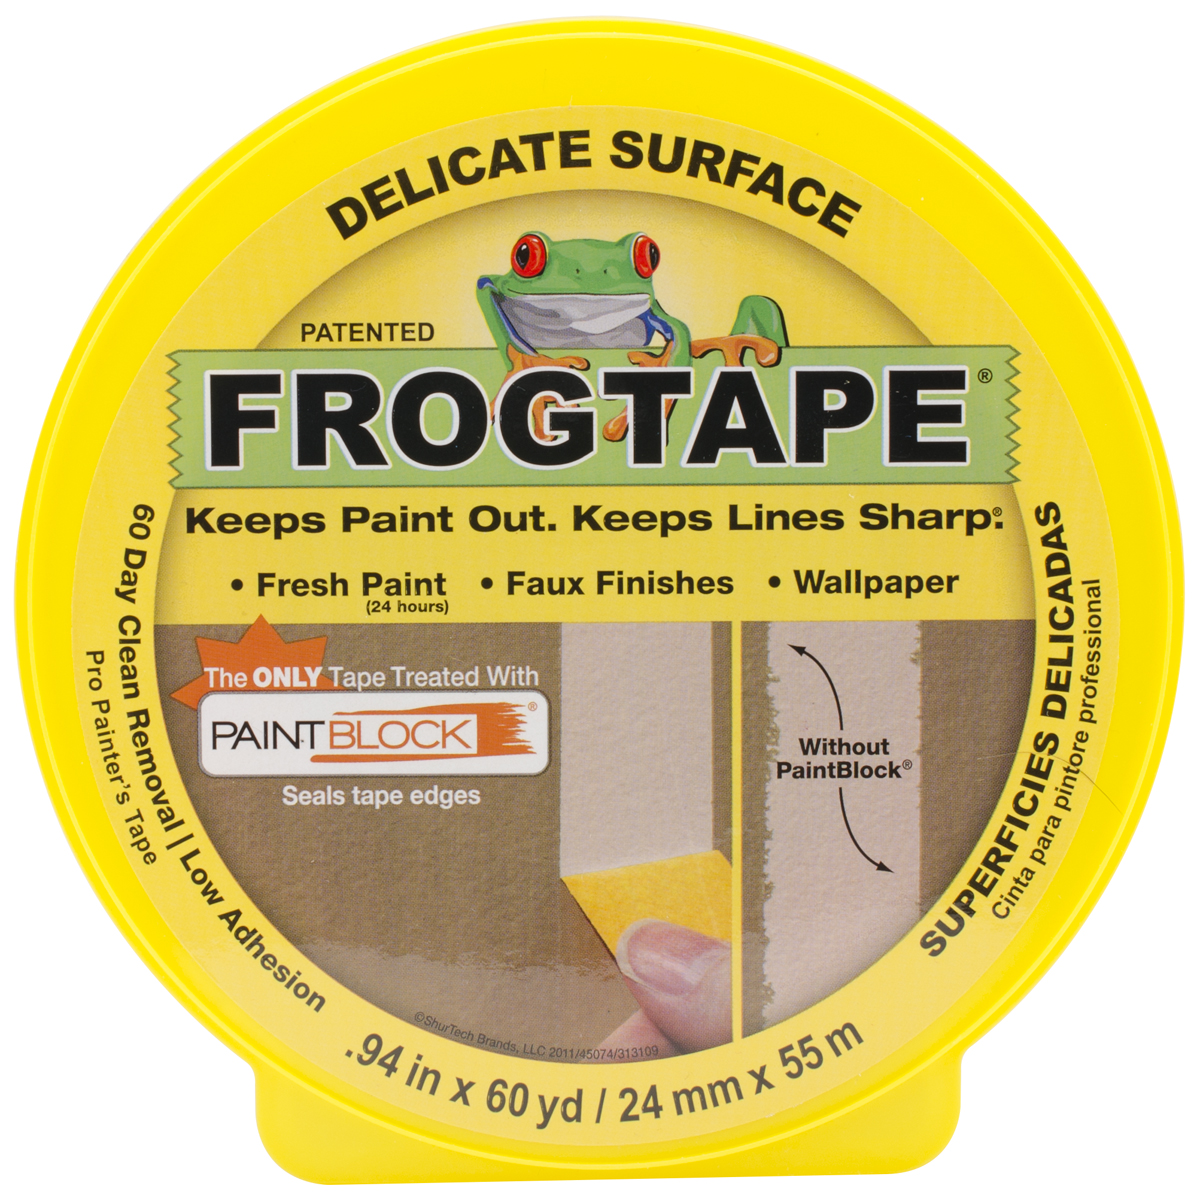 YELLOW FROGTAPE 94INX60YD